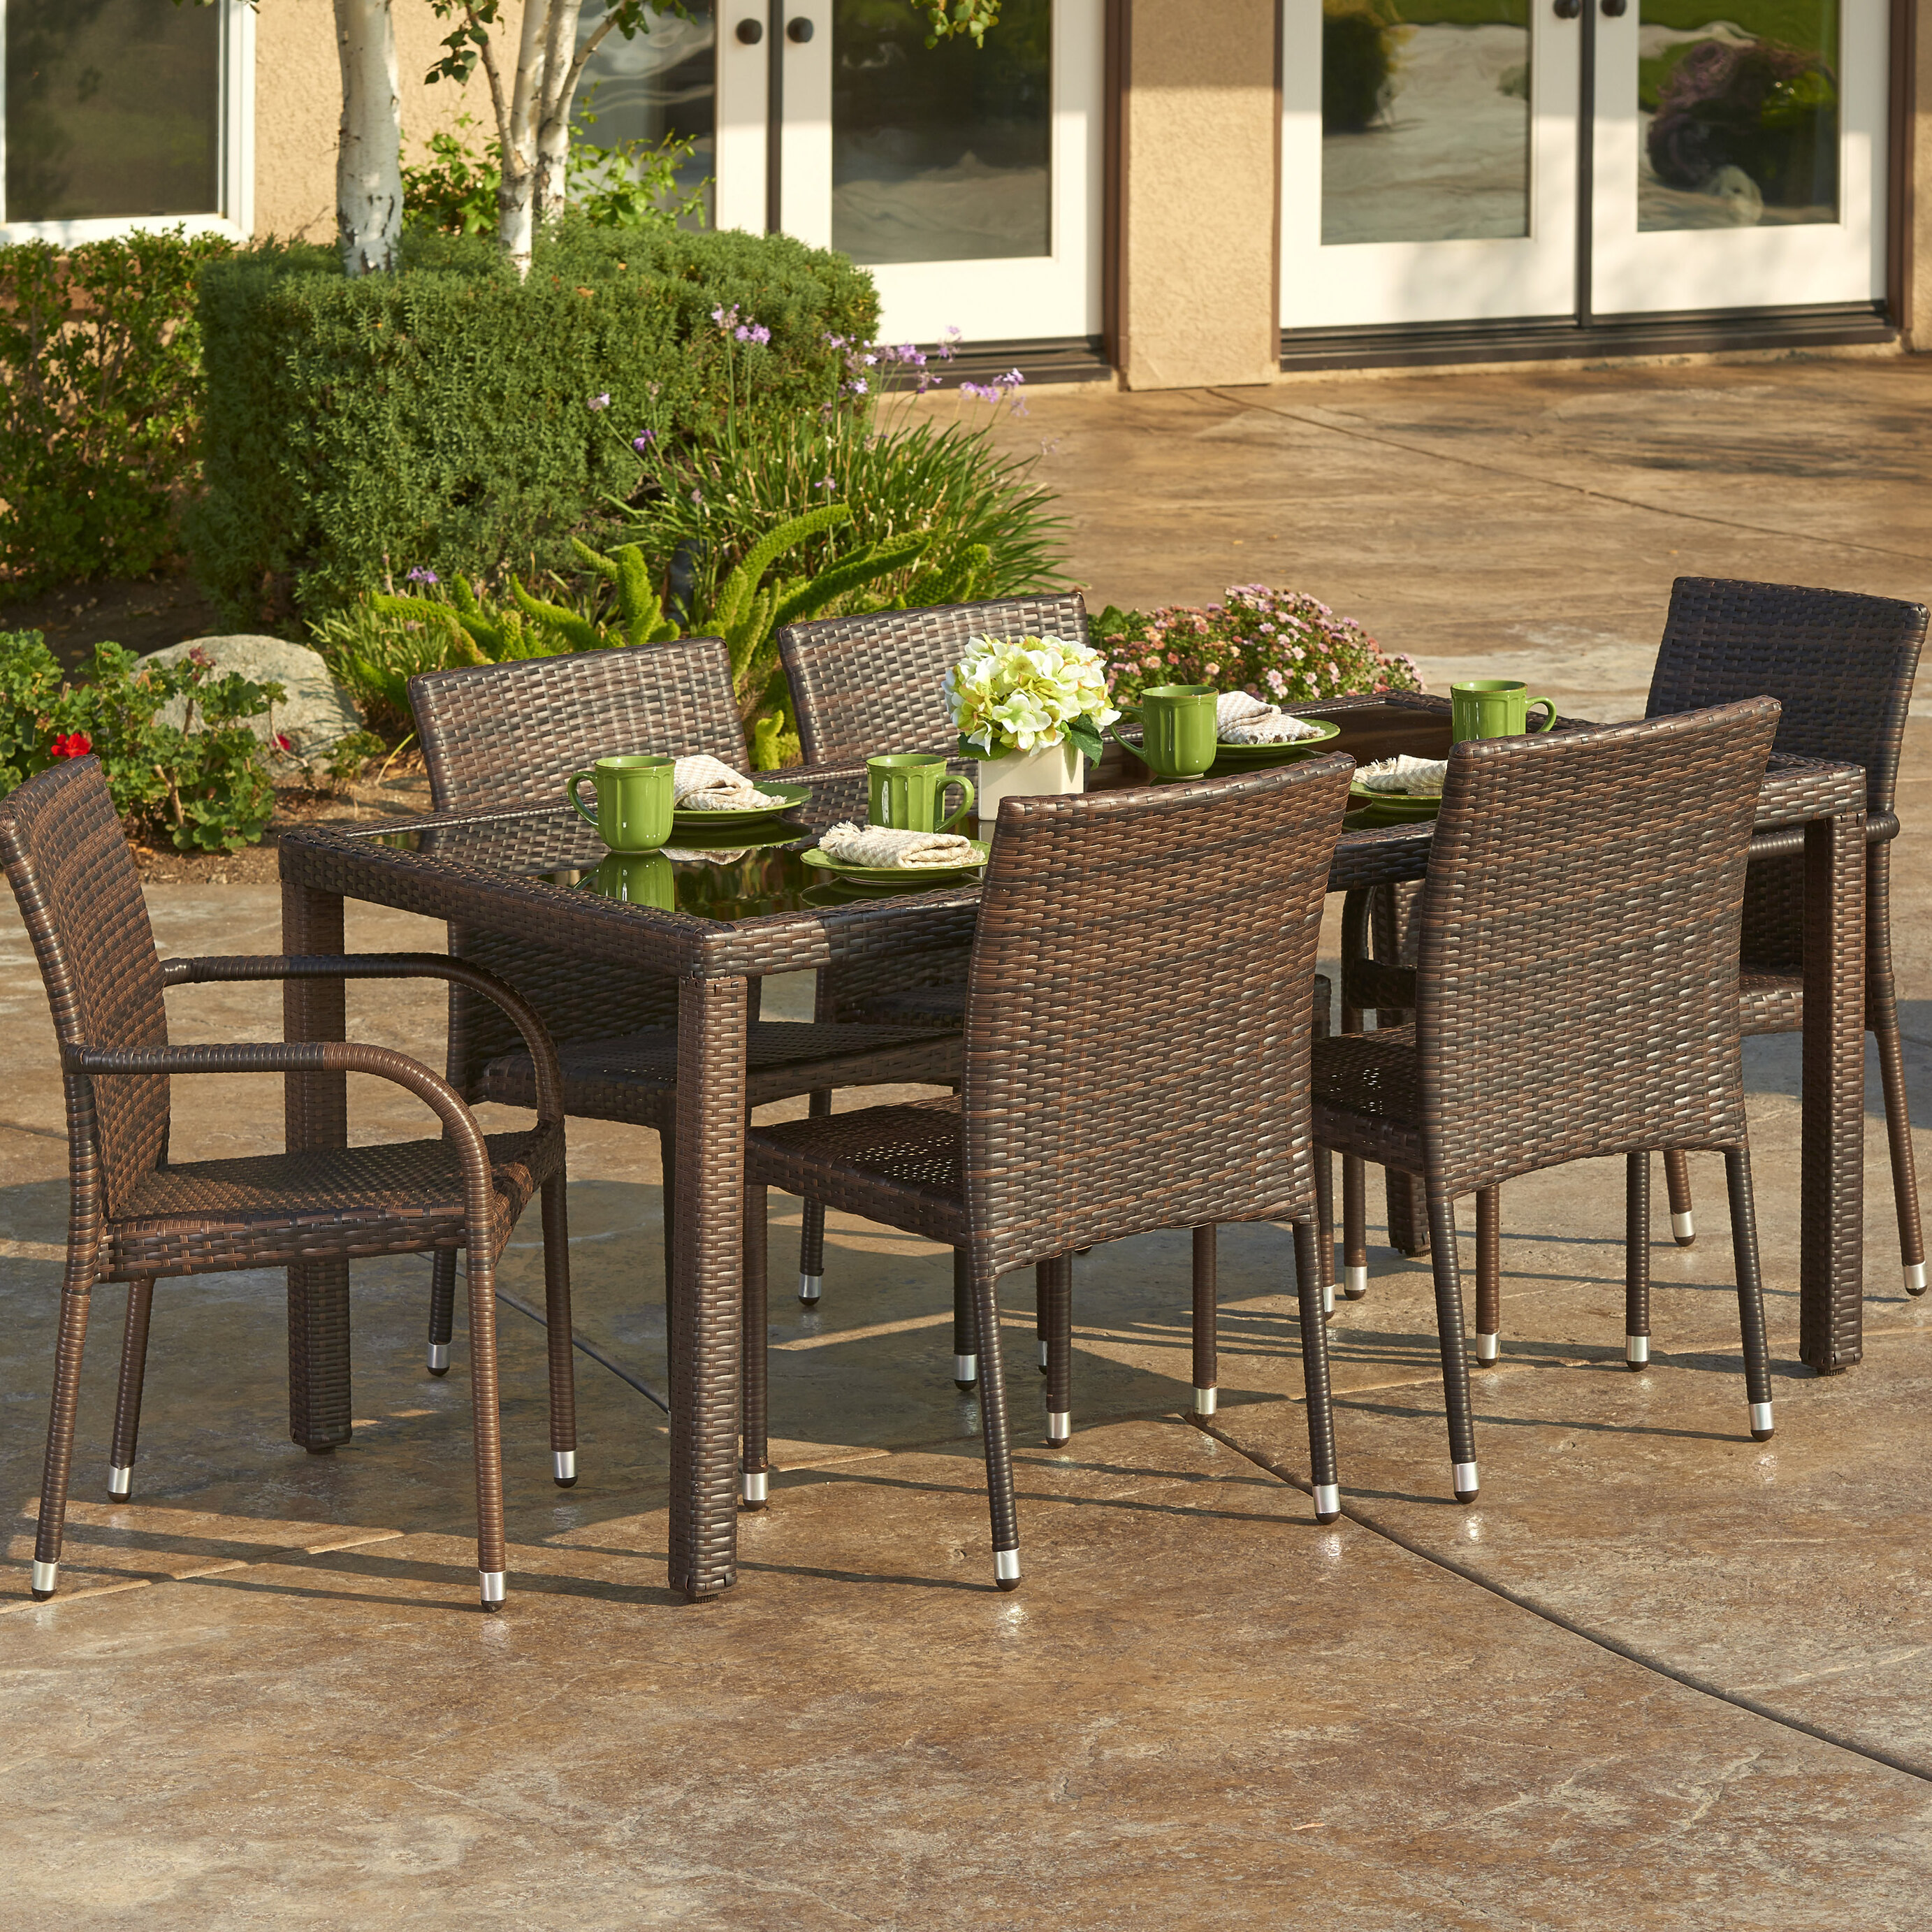 W Unlimited 7 Piece Outdoor Wicker Dining Set | Wayfair